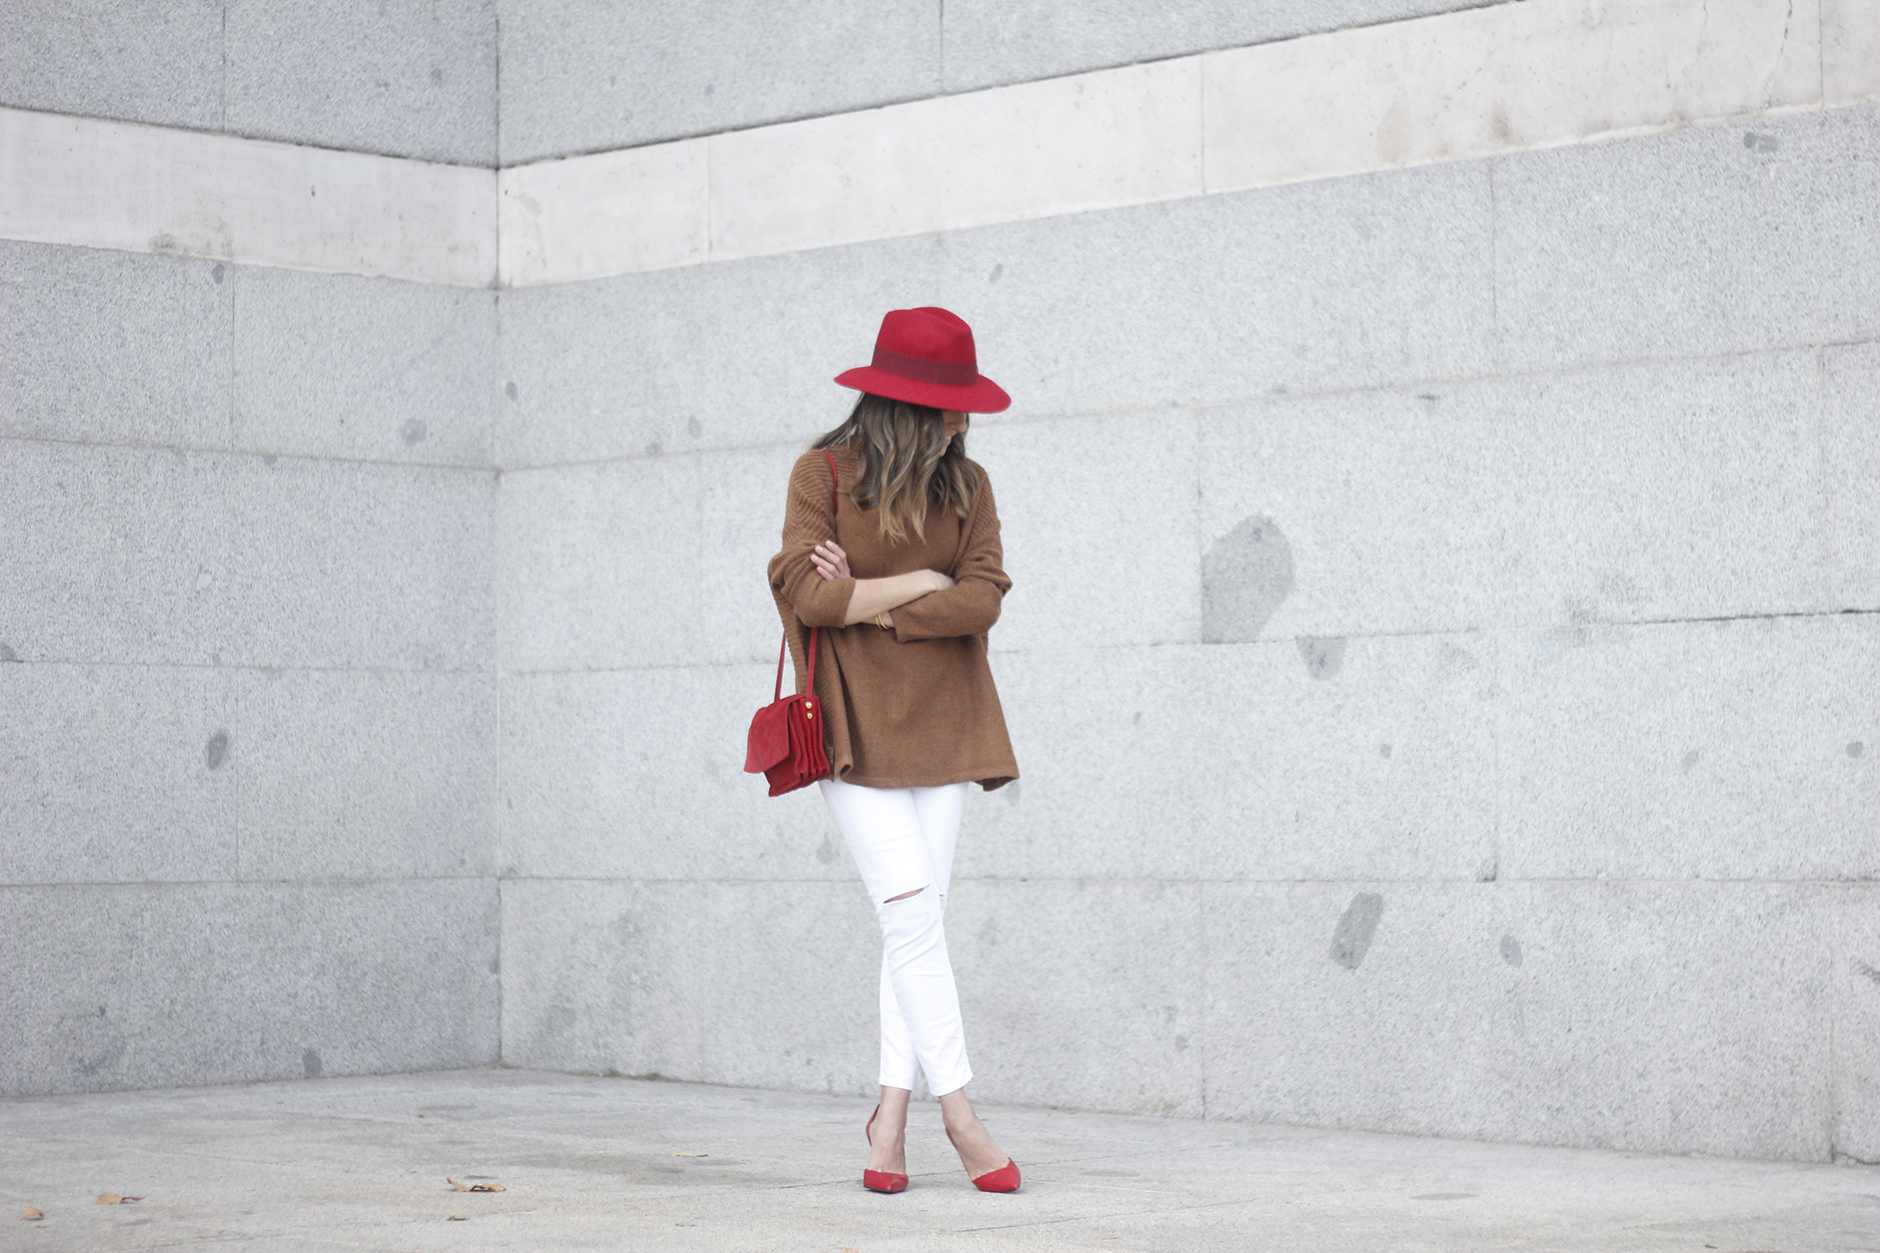 Turtleneck Sweater white jeans red heels red hat uterqüe outfit02